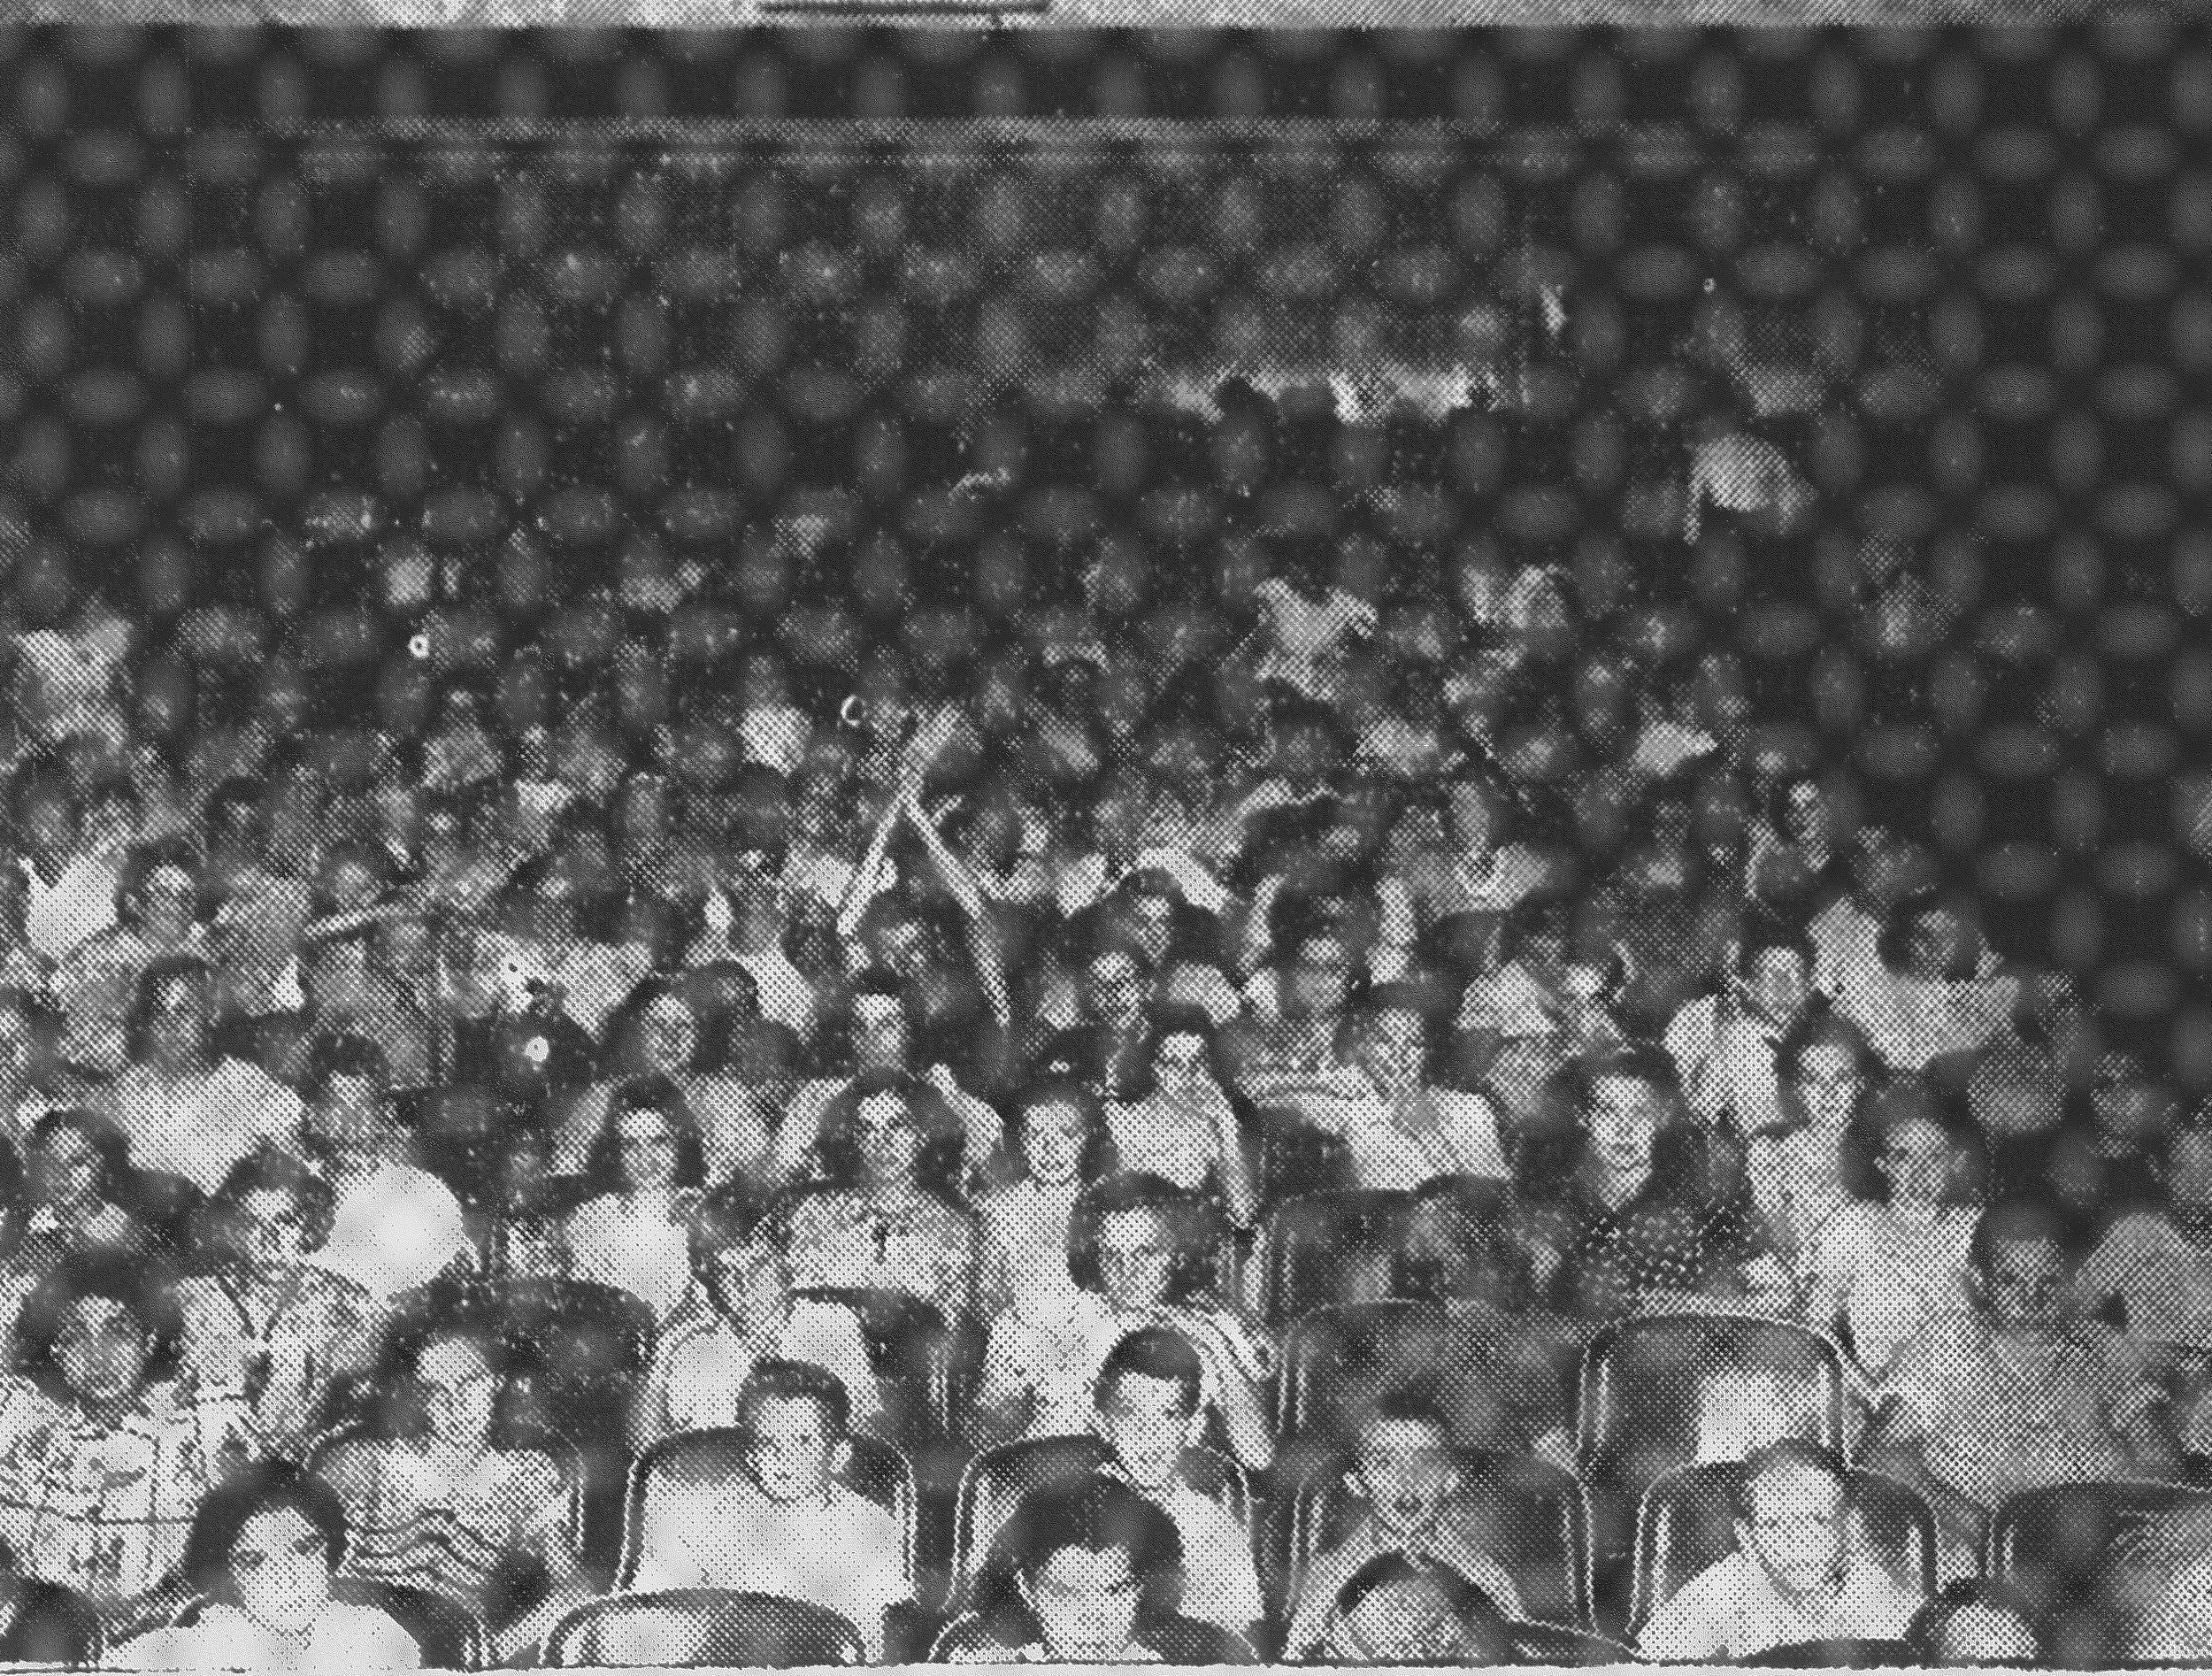 In 1938, a capacity crowd jammed the Sumter Theatre as guests of Sumter merchants who sponsored Dollar Day.